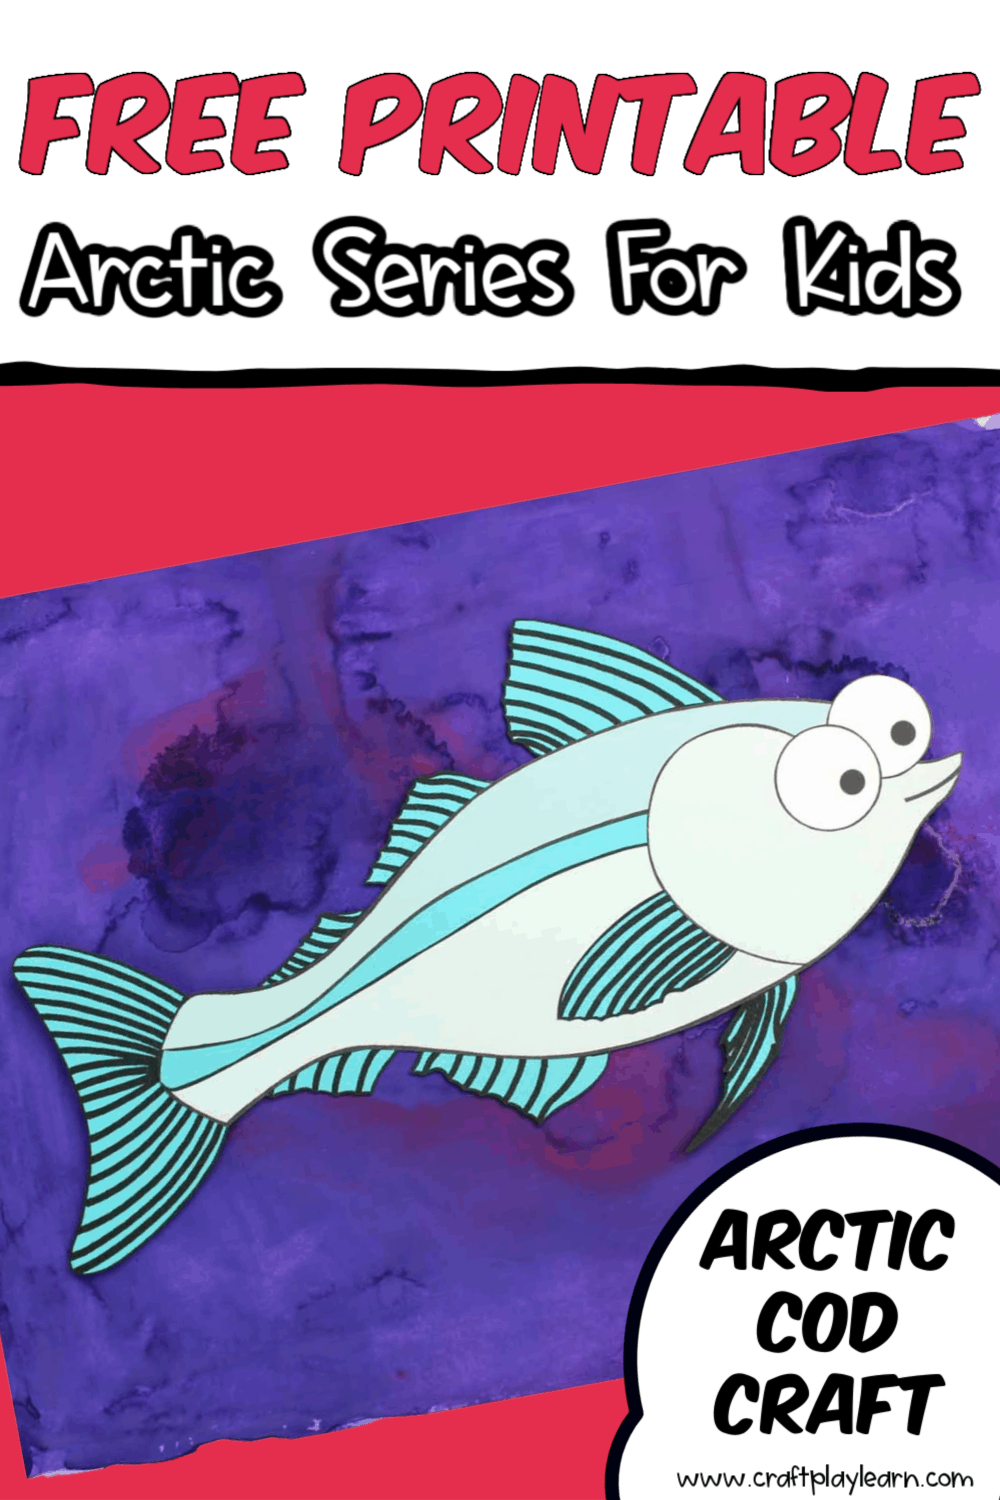 artic-cod-craft-for-kids